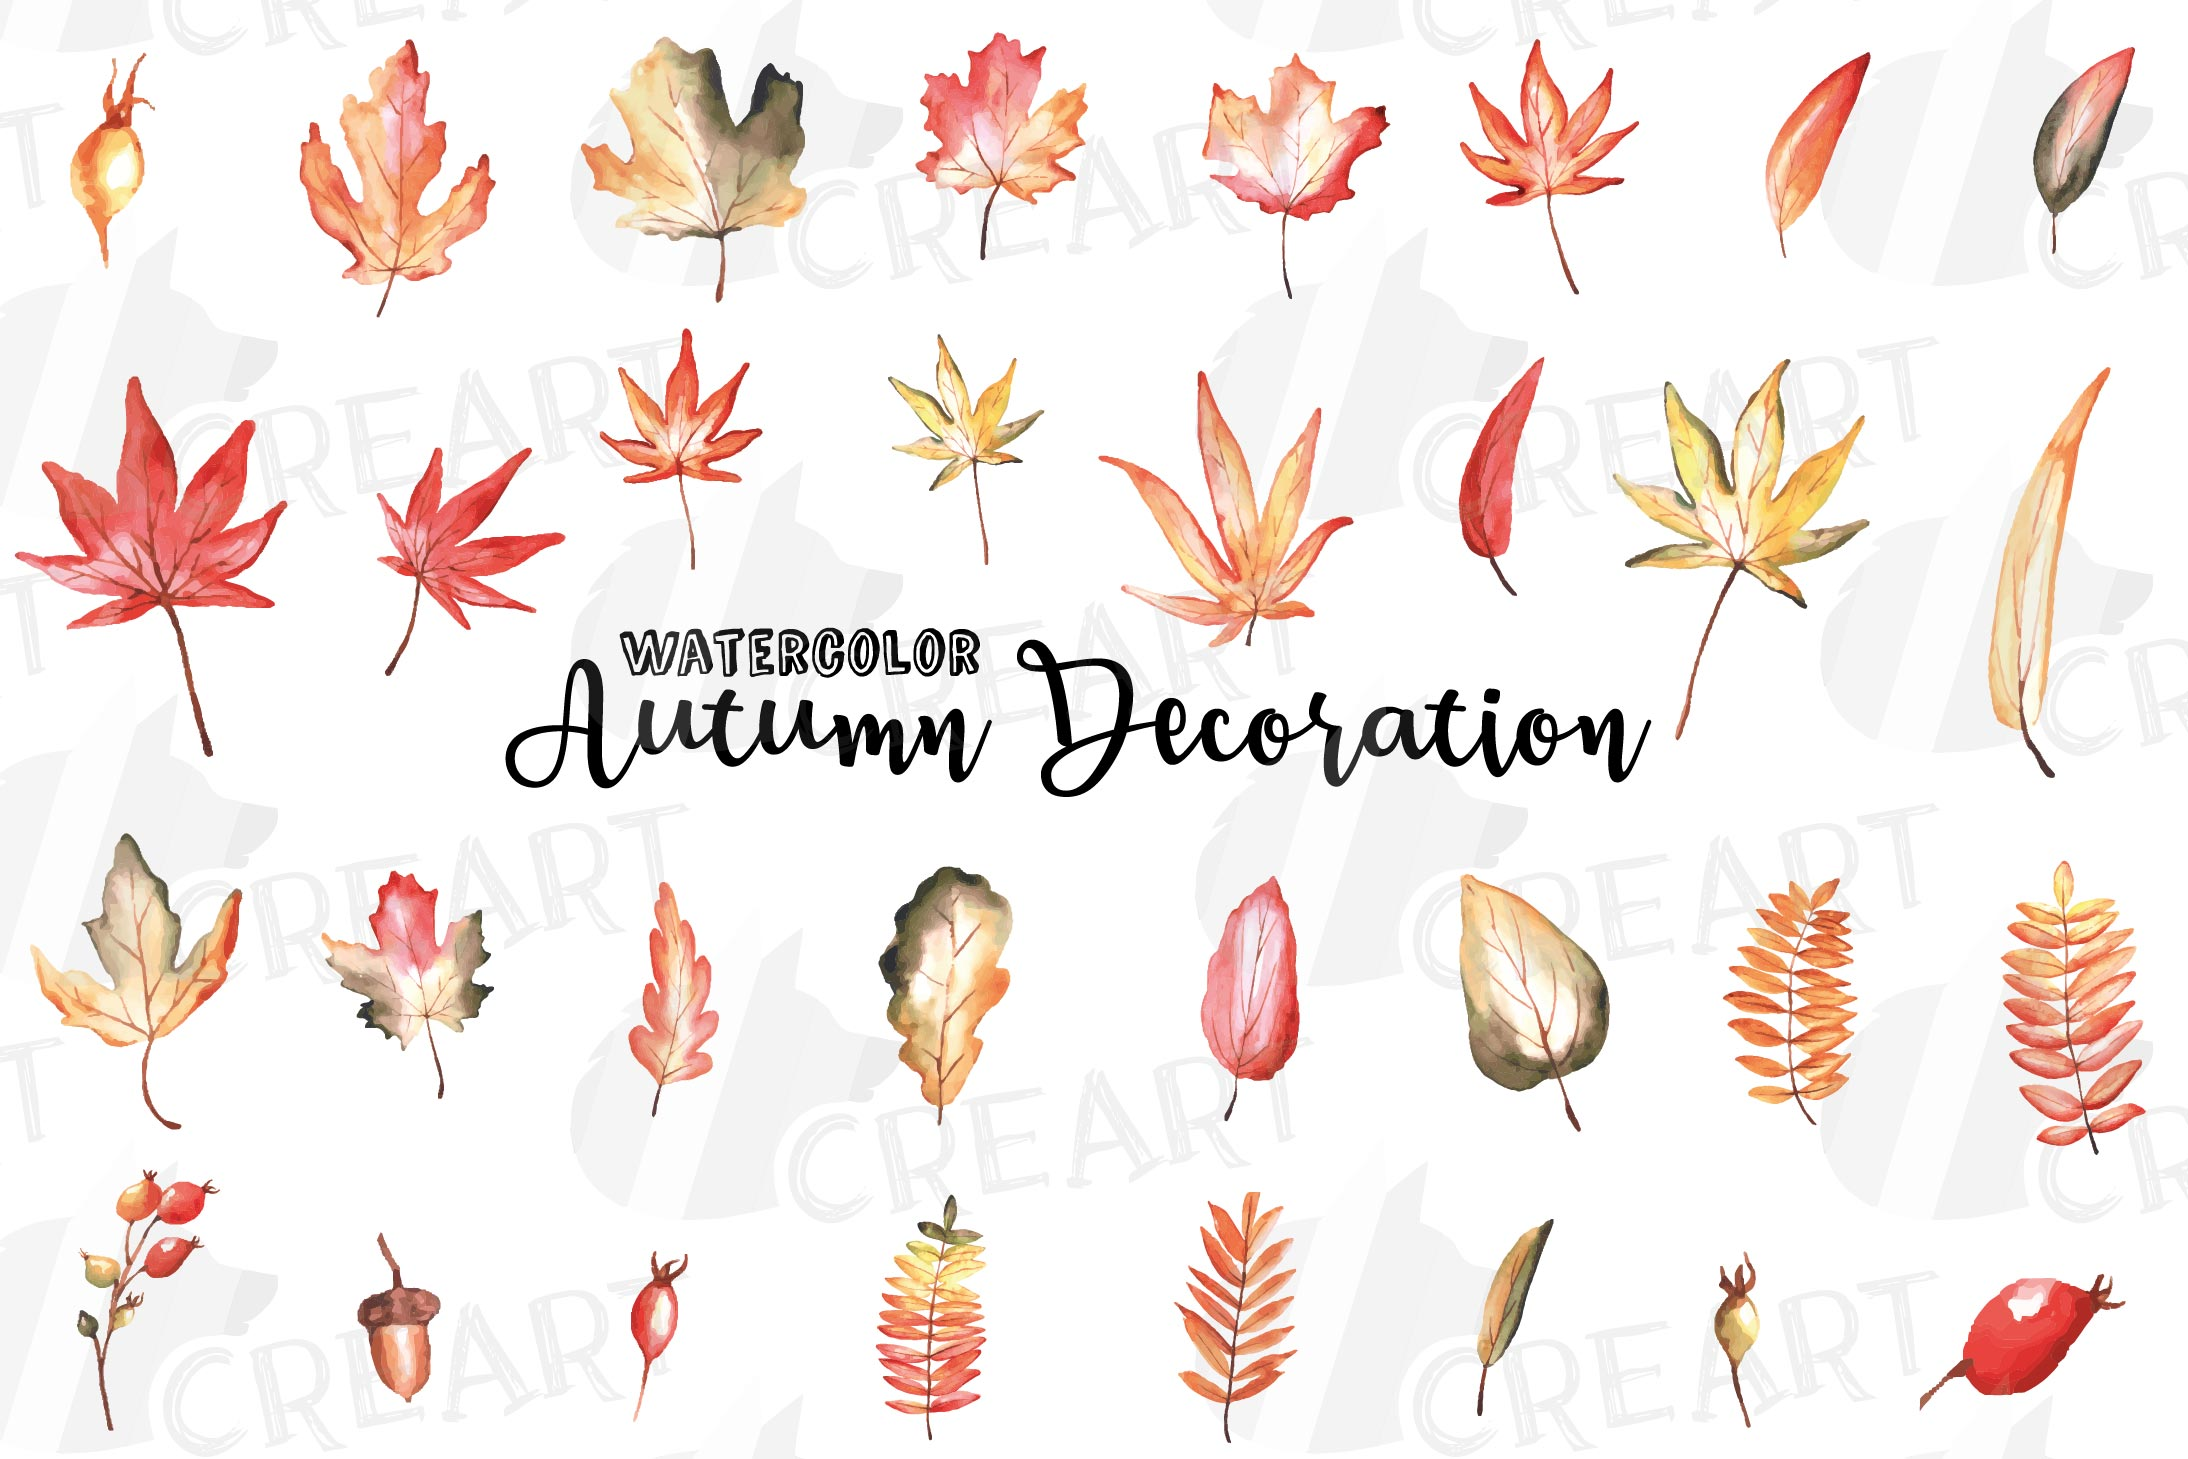 Printable autumn leaves watercolor decoration clip art pack. example image 1